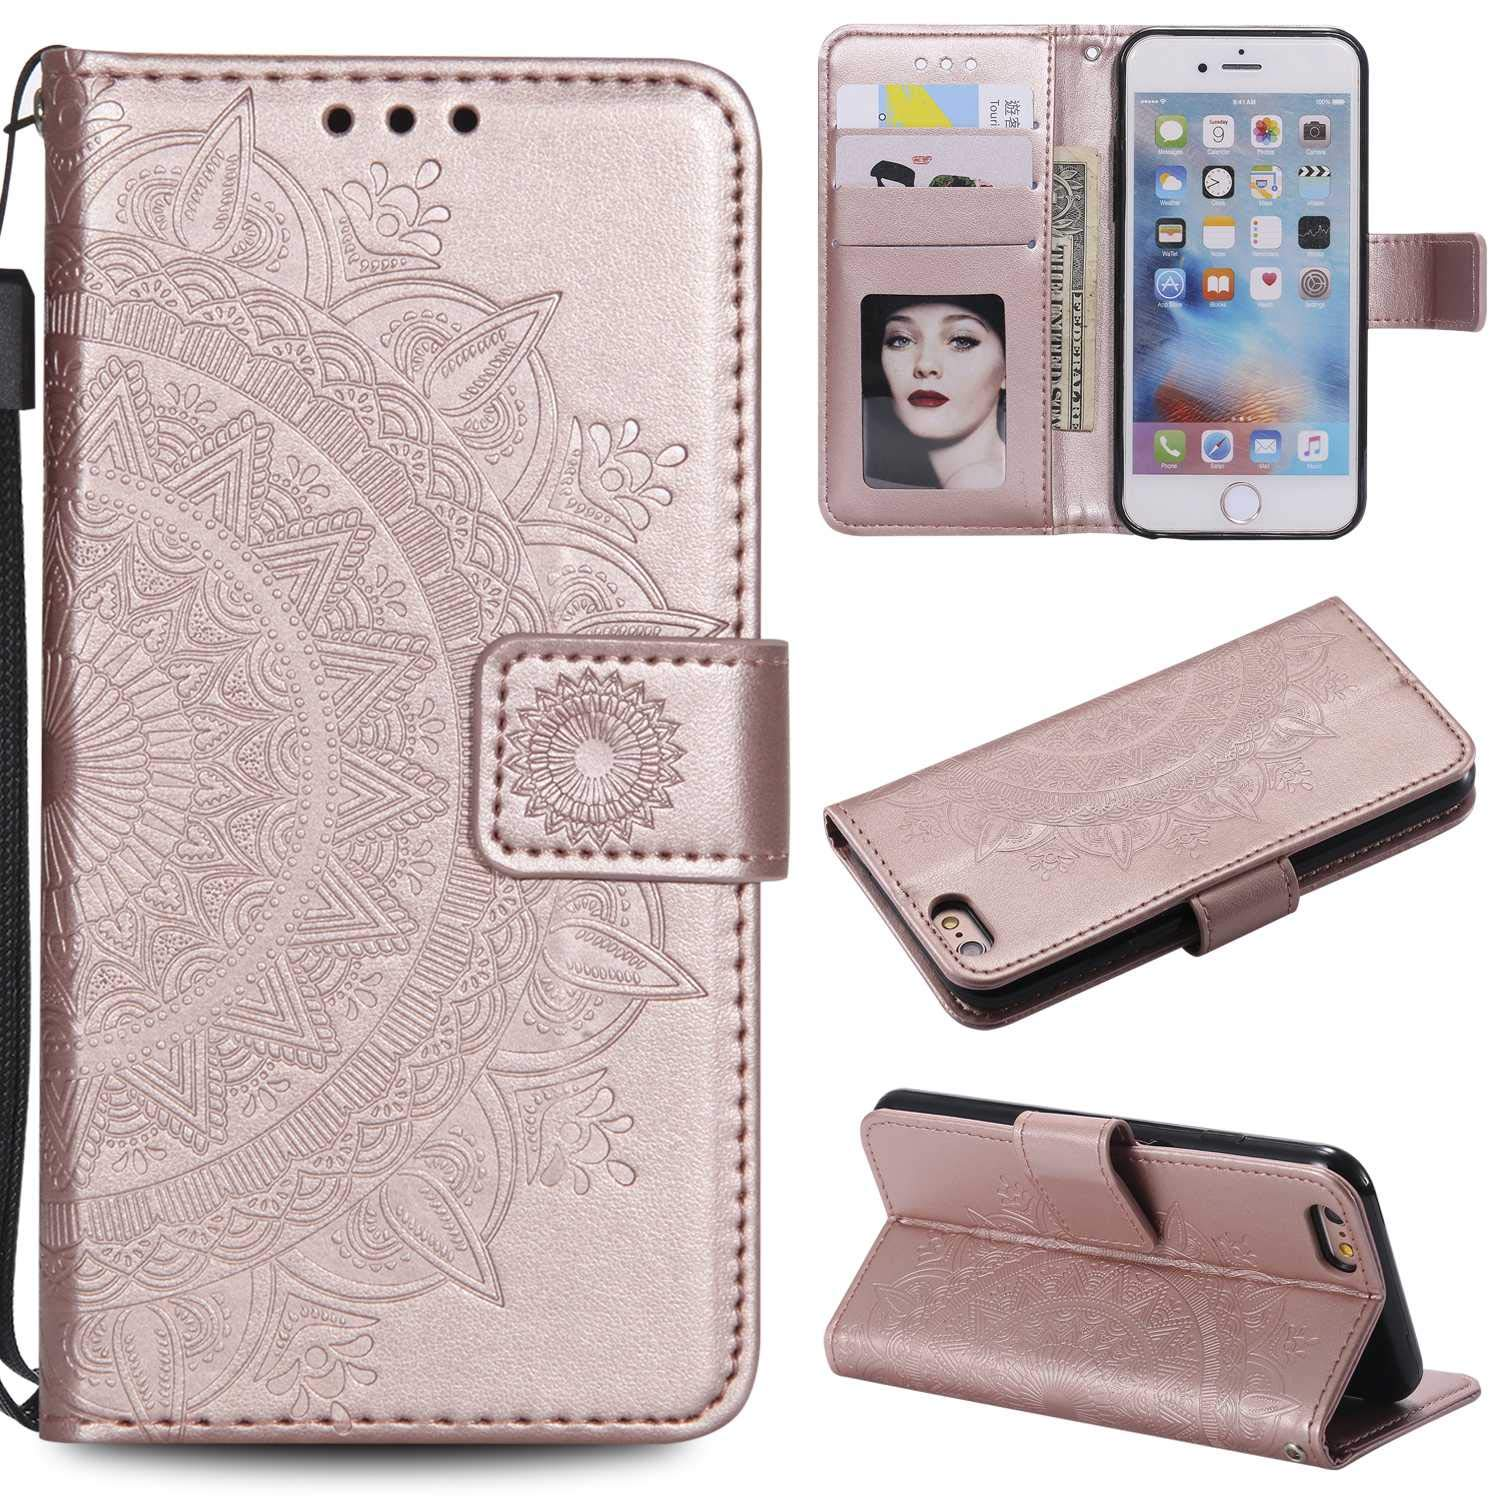 Case iPhone XR, Bear Village PU Leather Embossed Design Case with Card Holder and ID Slot, Wallet Flip Stand Cover for Apple iPhone XR (#1 Rose Gold) by Bear Village (Image #1)